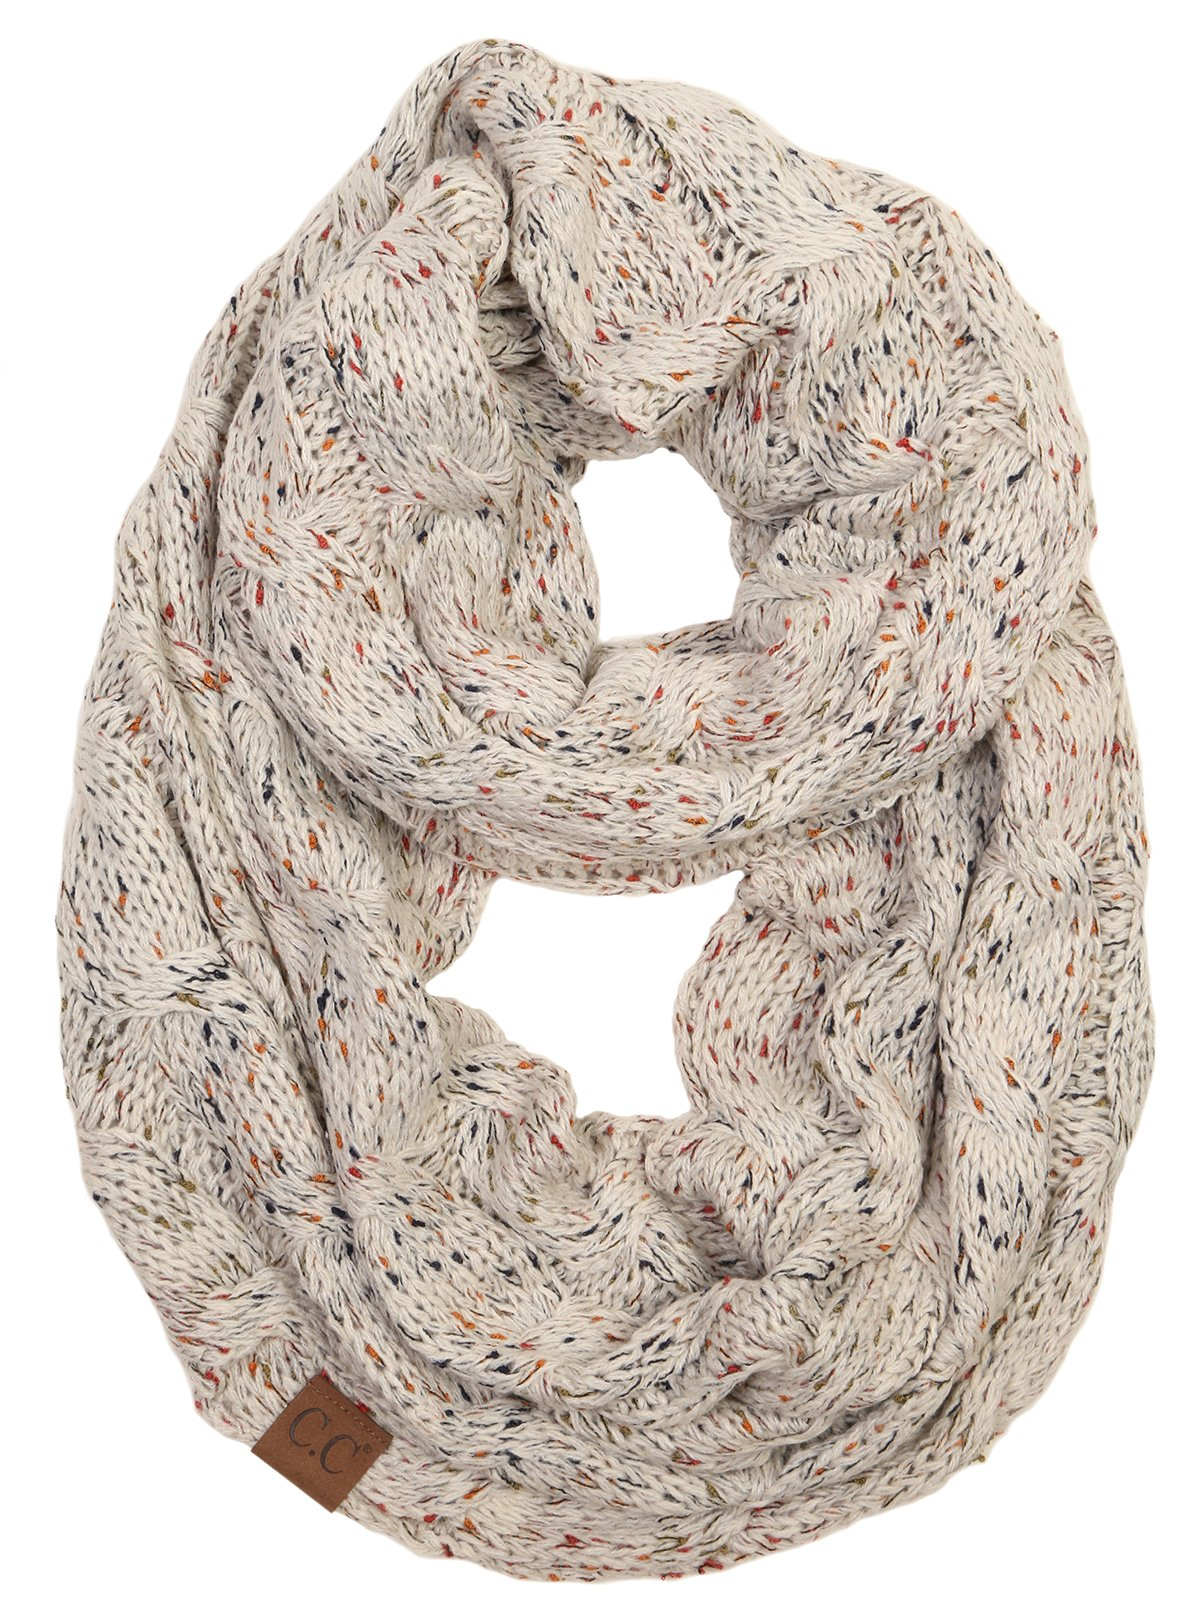 S1-6033-67 Funky Junque Infinity Scarf - Oatmeal (Confetti) by Funky Junque